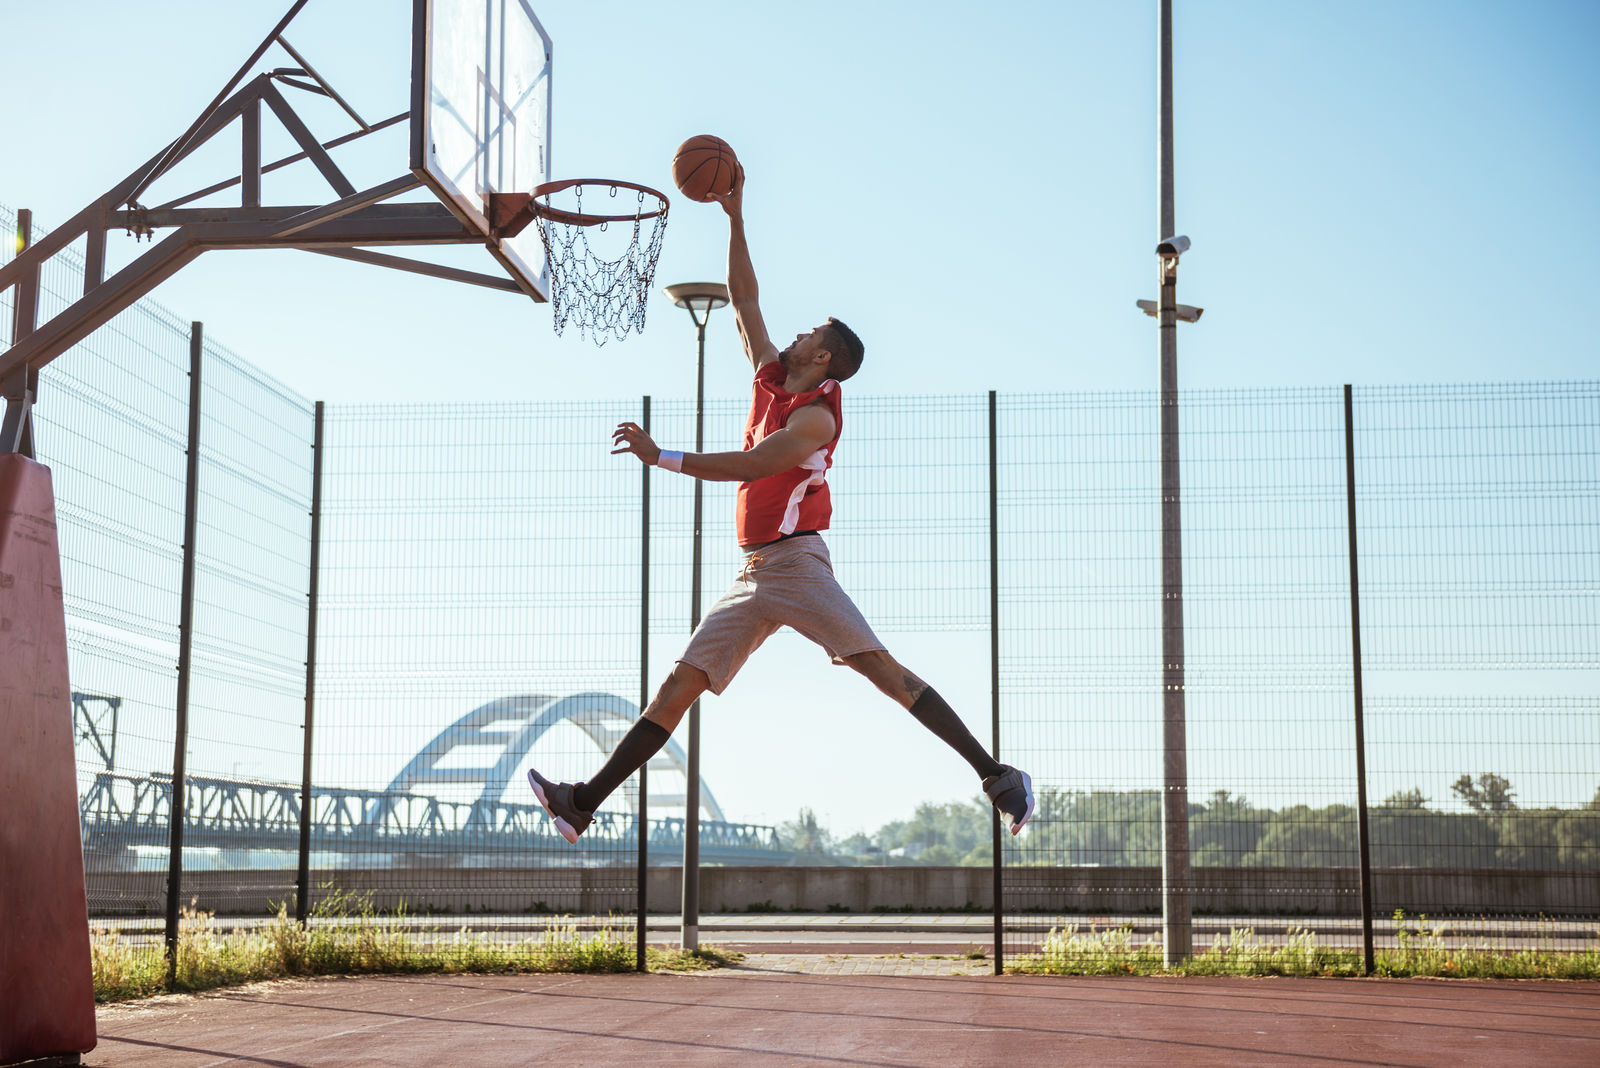 Watch this player slam dunk 15 times in one minute!